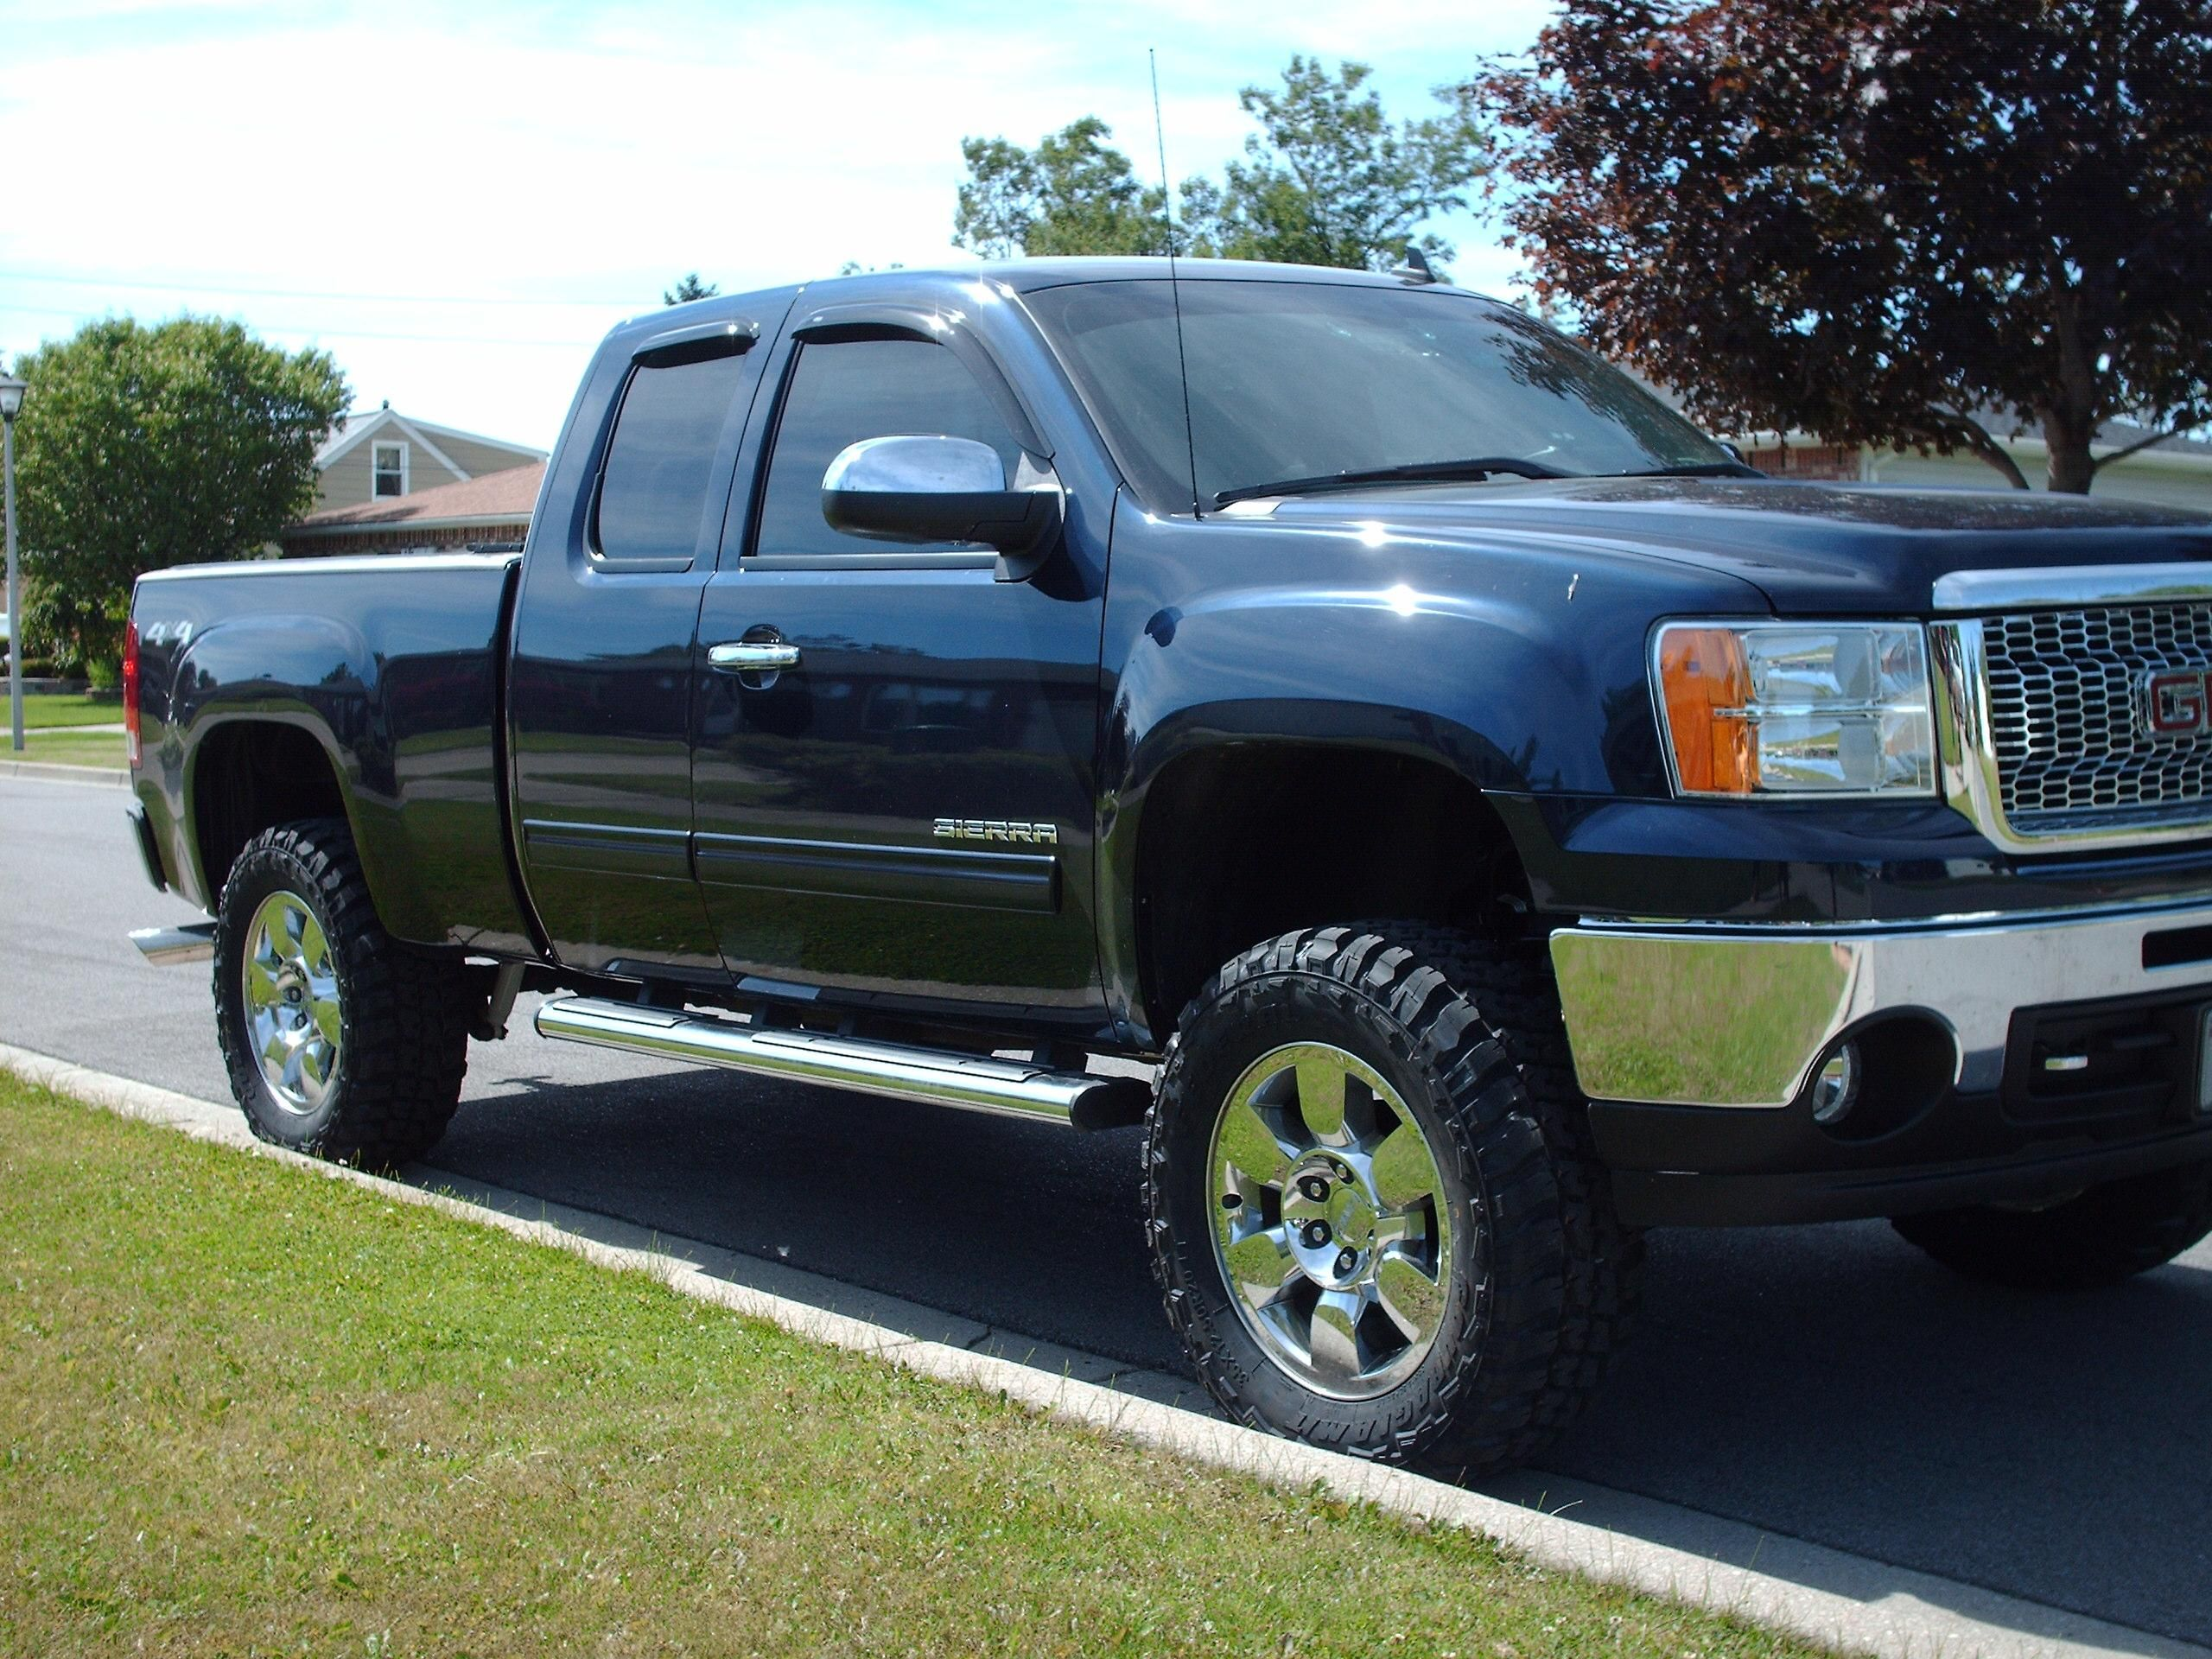 Check Out Customized Notfeelinu S 2010 Gmc Sierra 1500 Extended